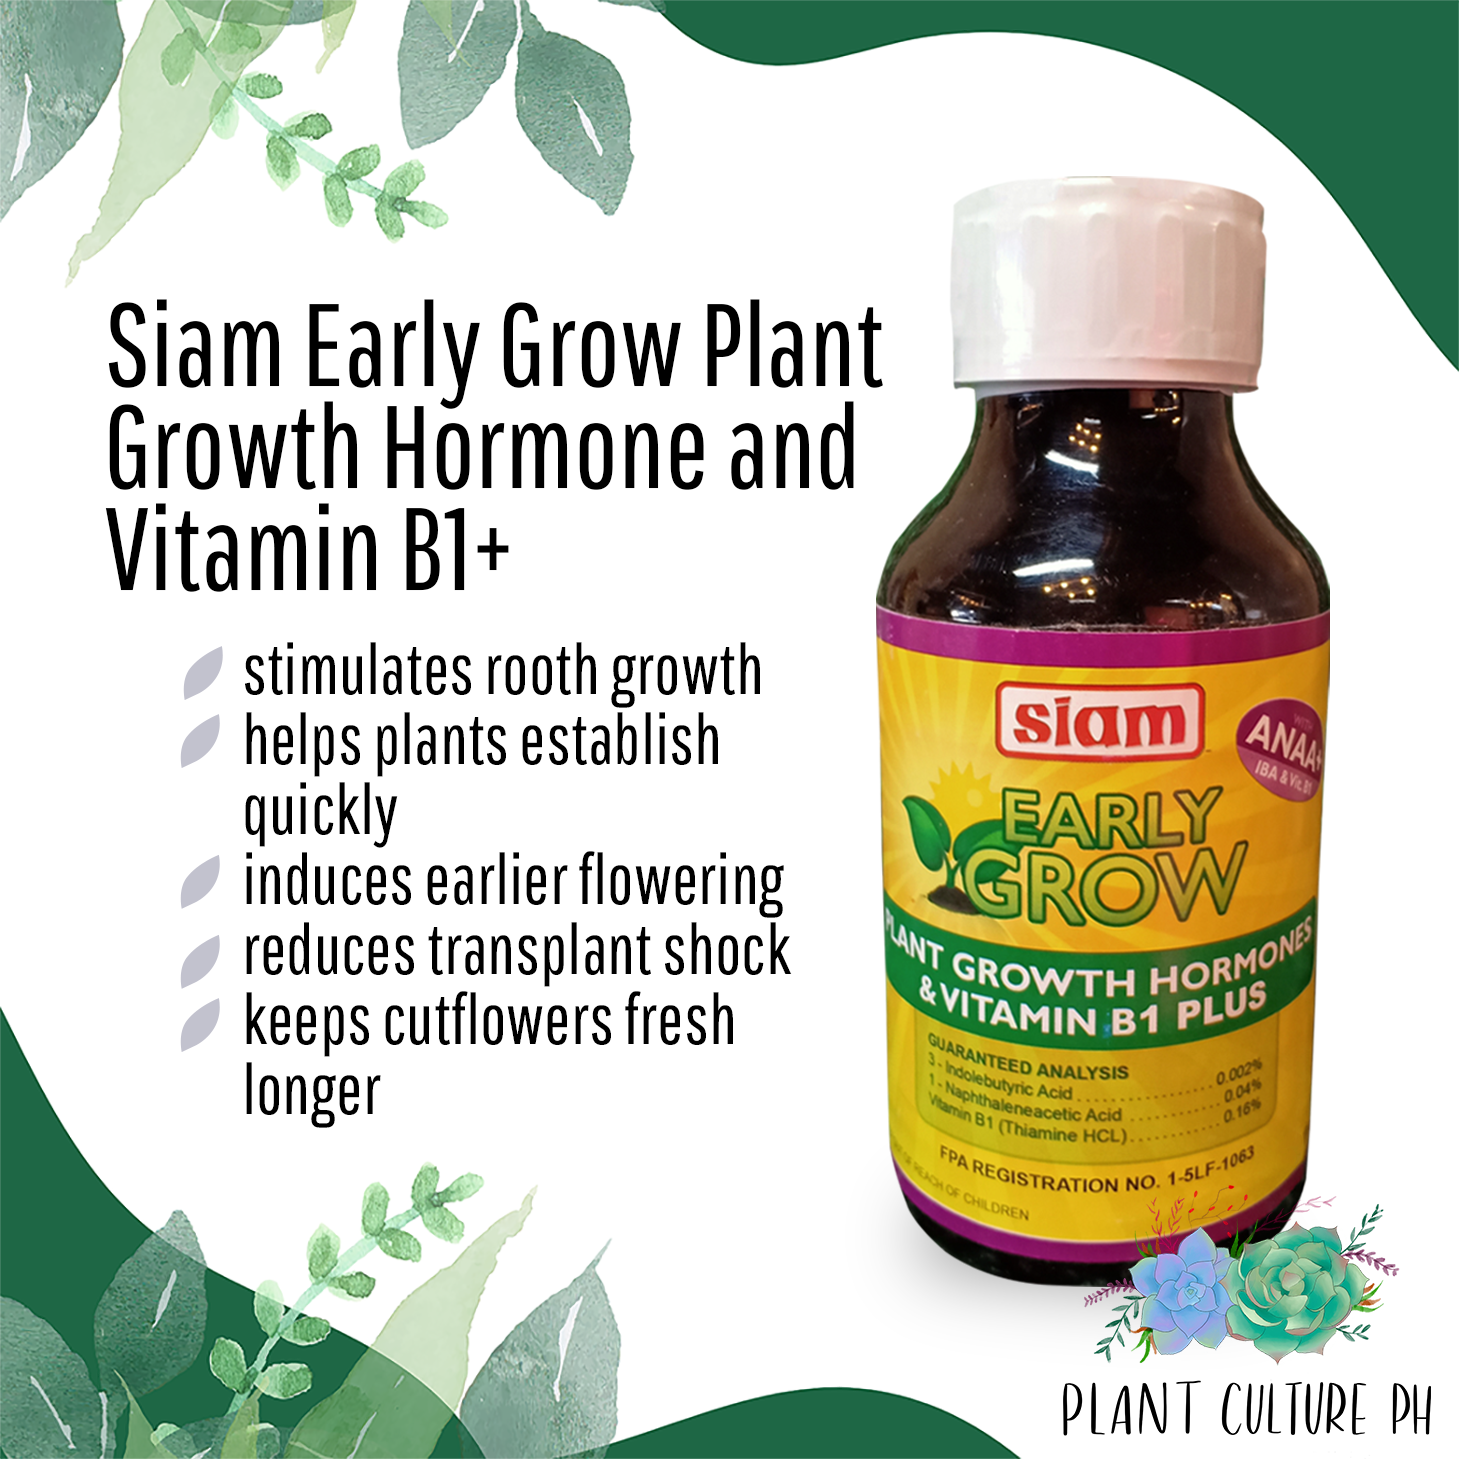 Siam Early Grow Plant Growth Hormone and Vitamin B1+